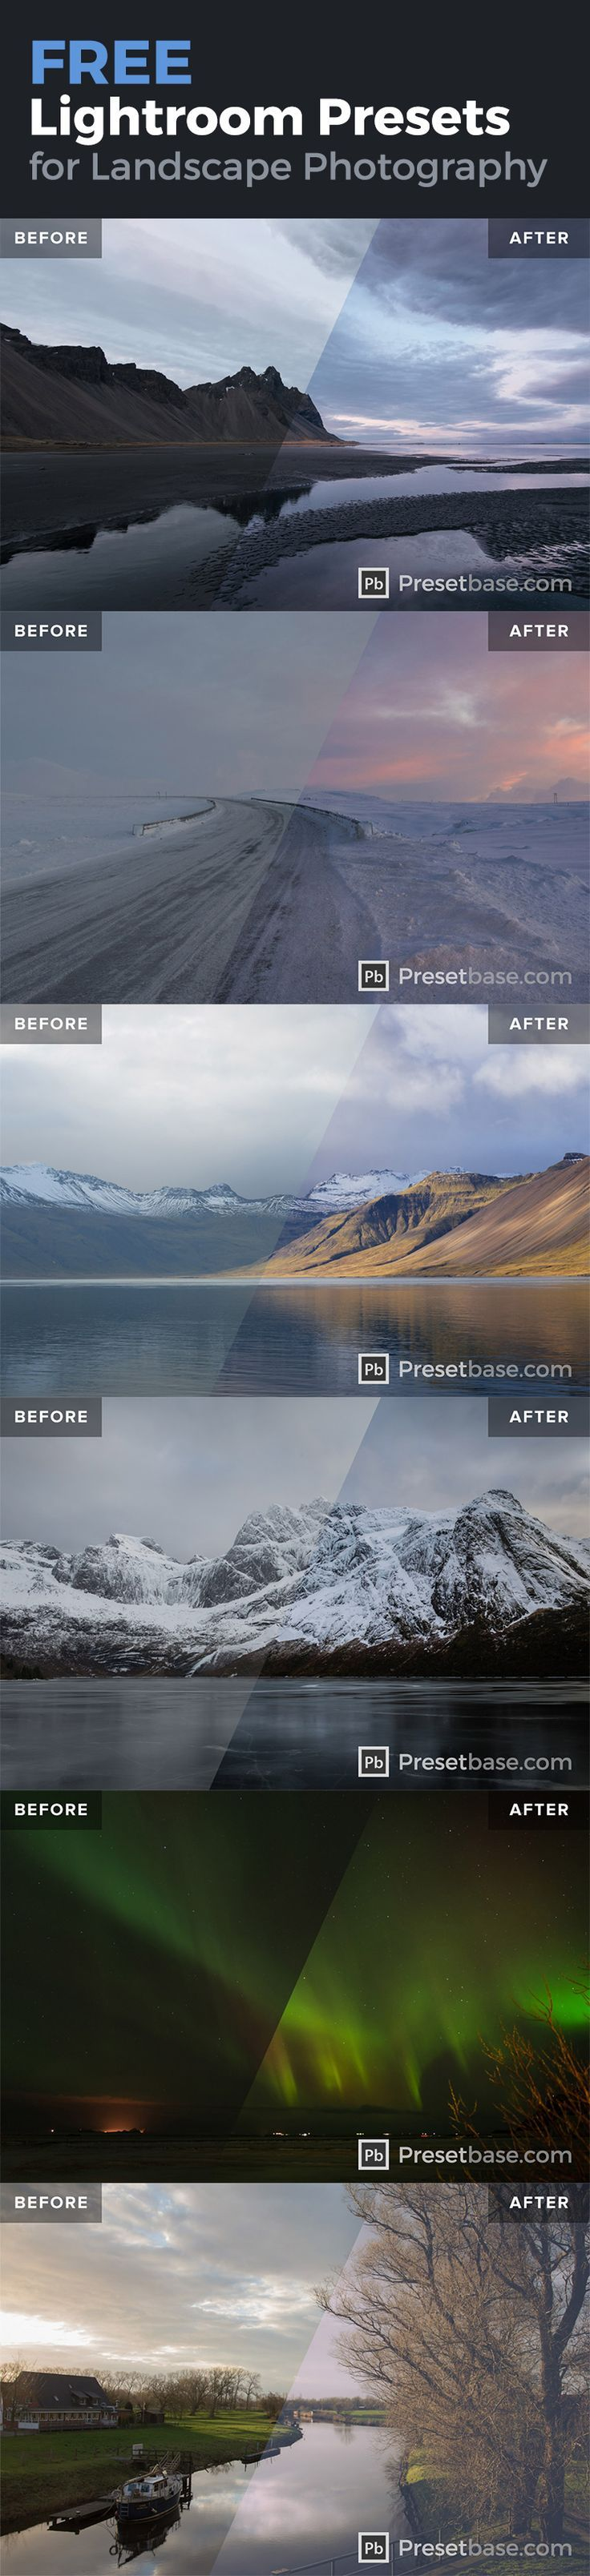 A collection of *FREE* Lightroom Presets for Lands…